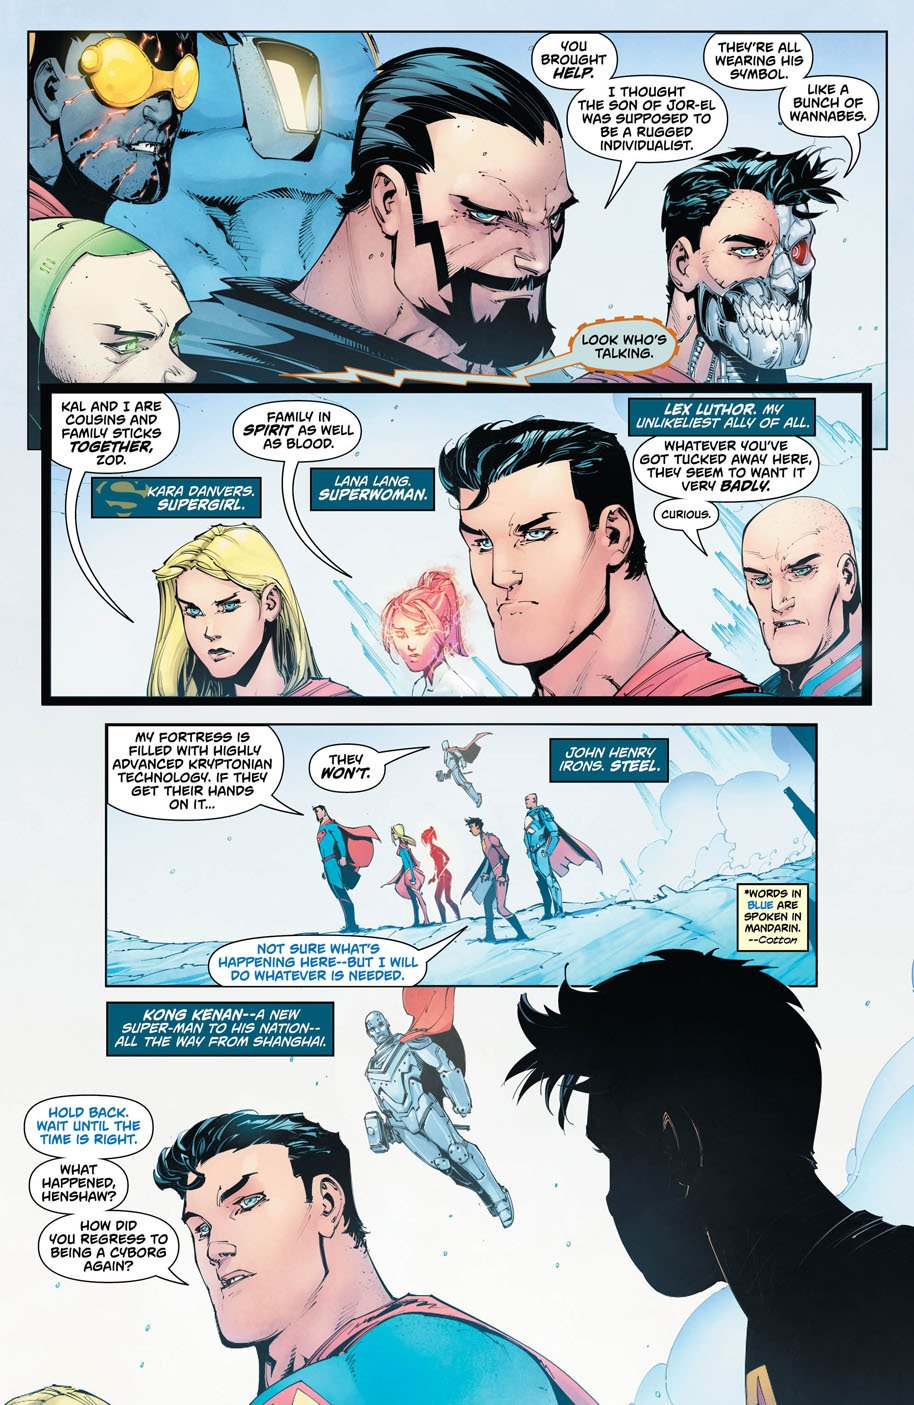 Action Comics 983 page 4